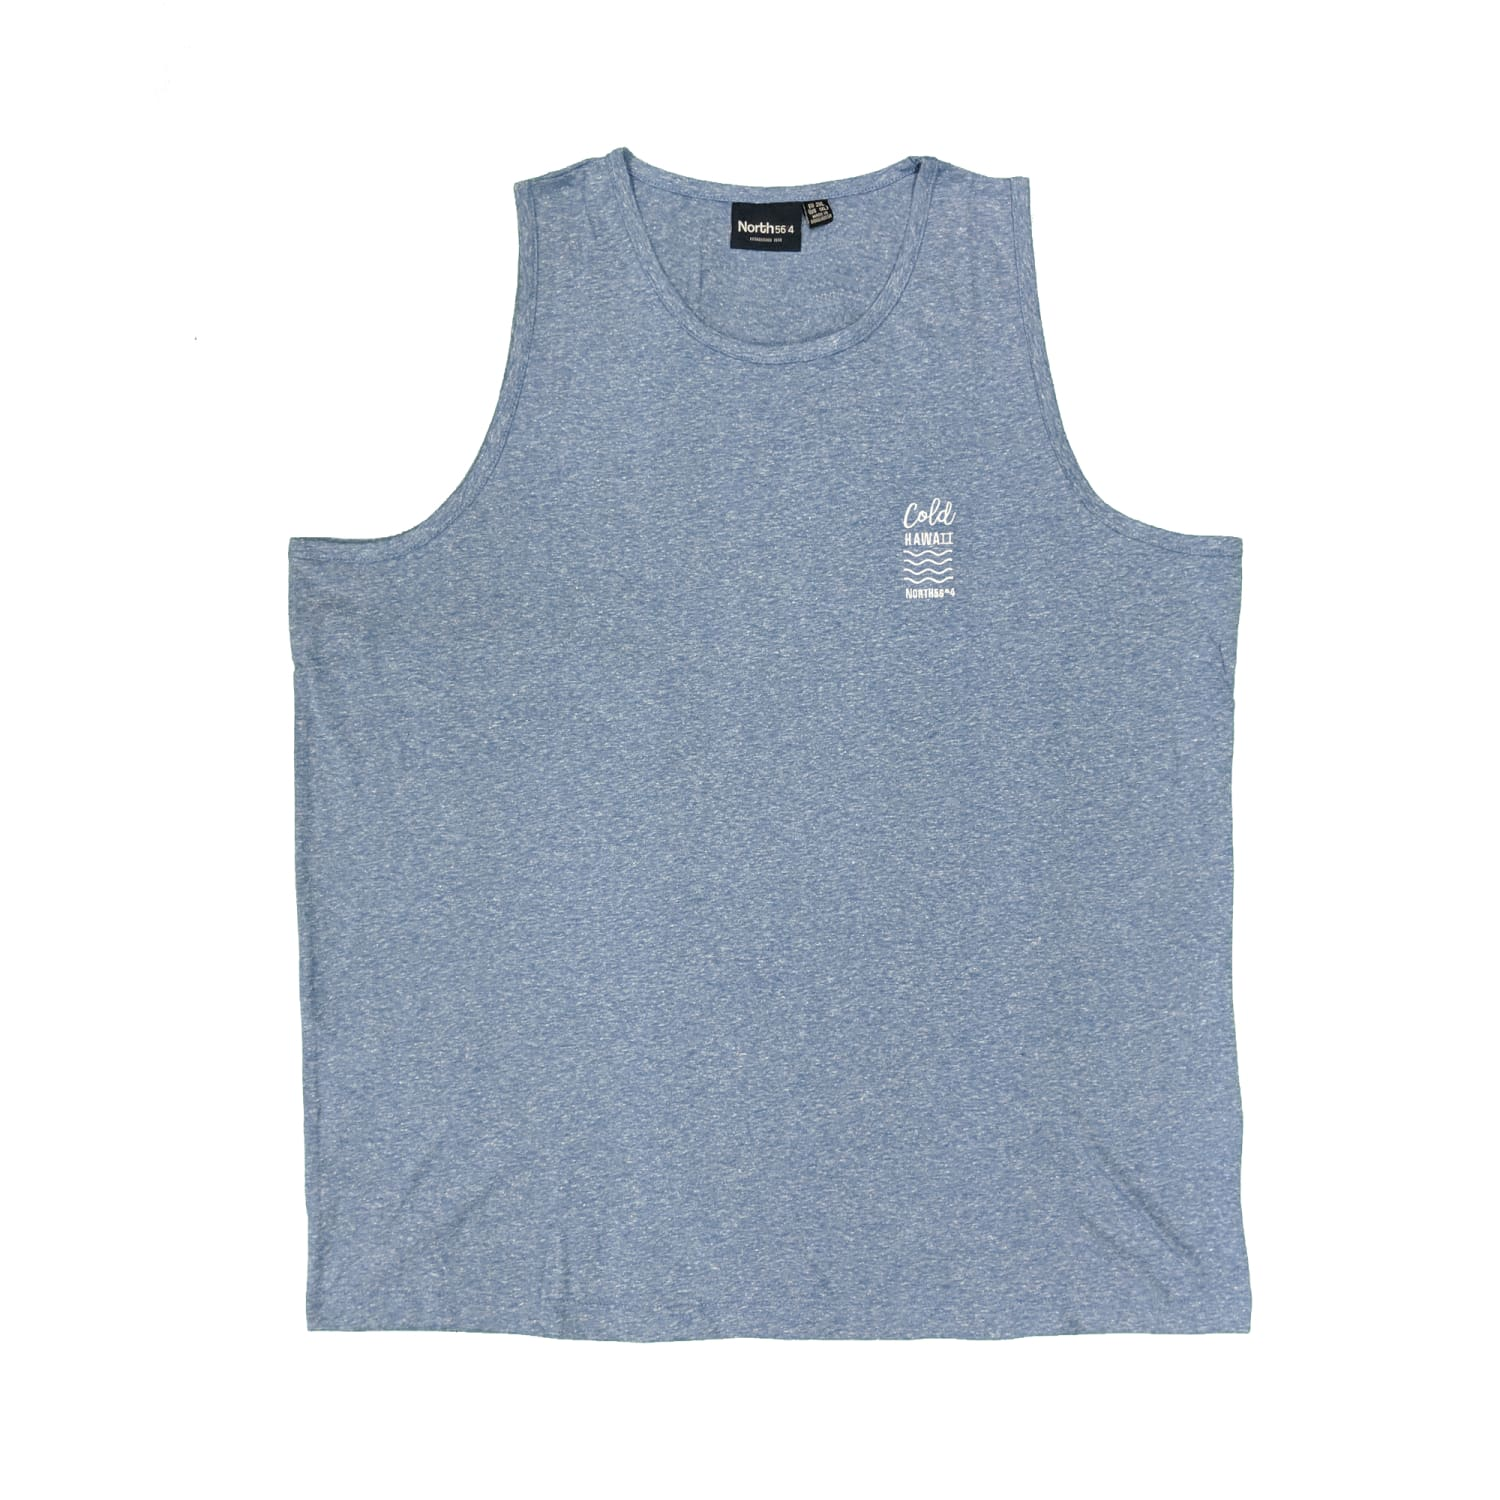 North 56°4 Vest - 92107B - Blue 1